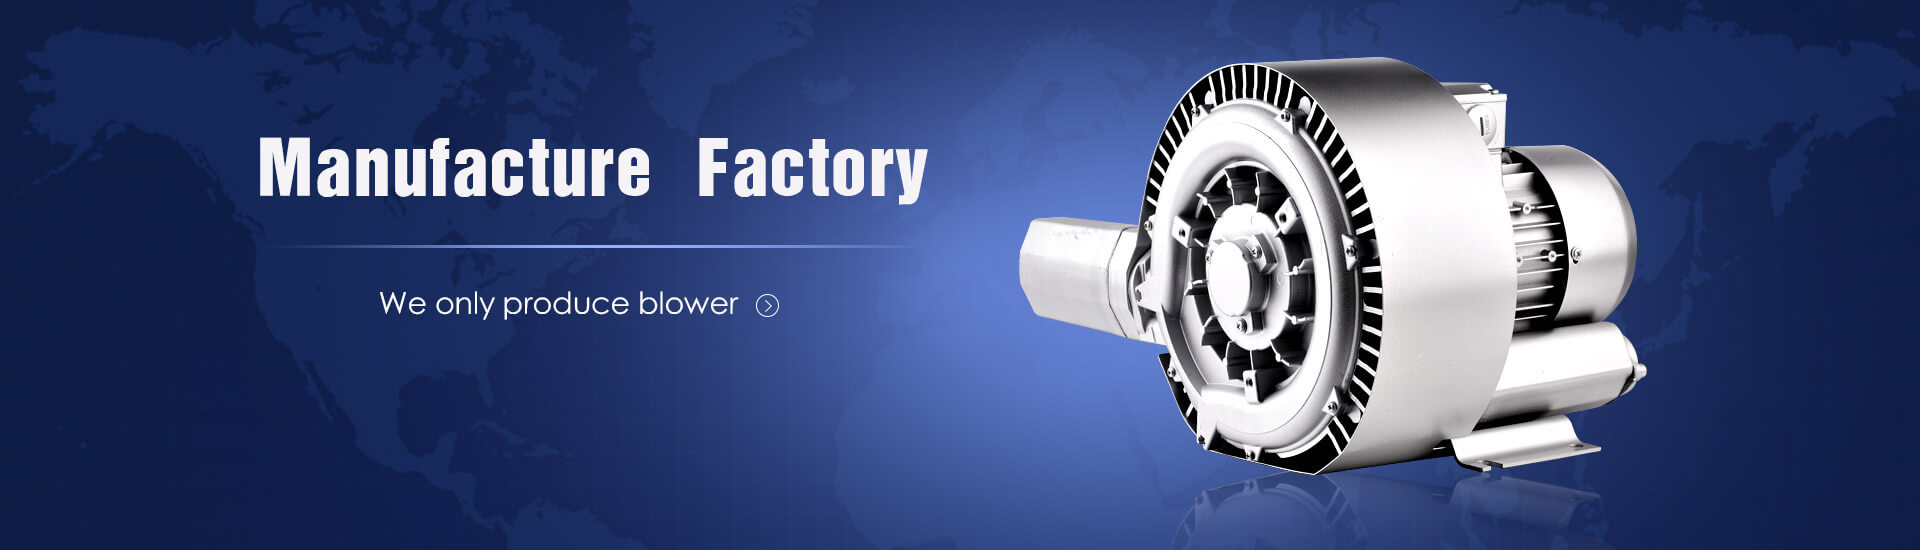 Ring Blower Manufacturer & Supplier - REXCHIP